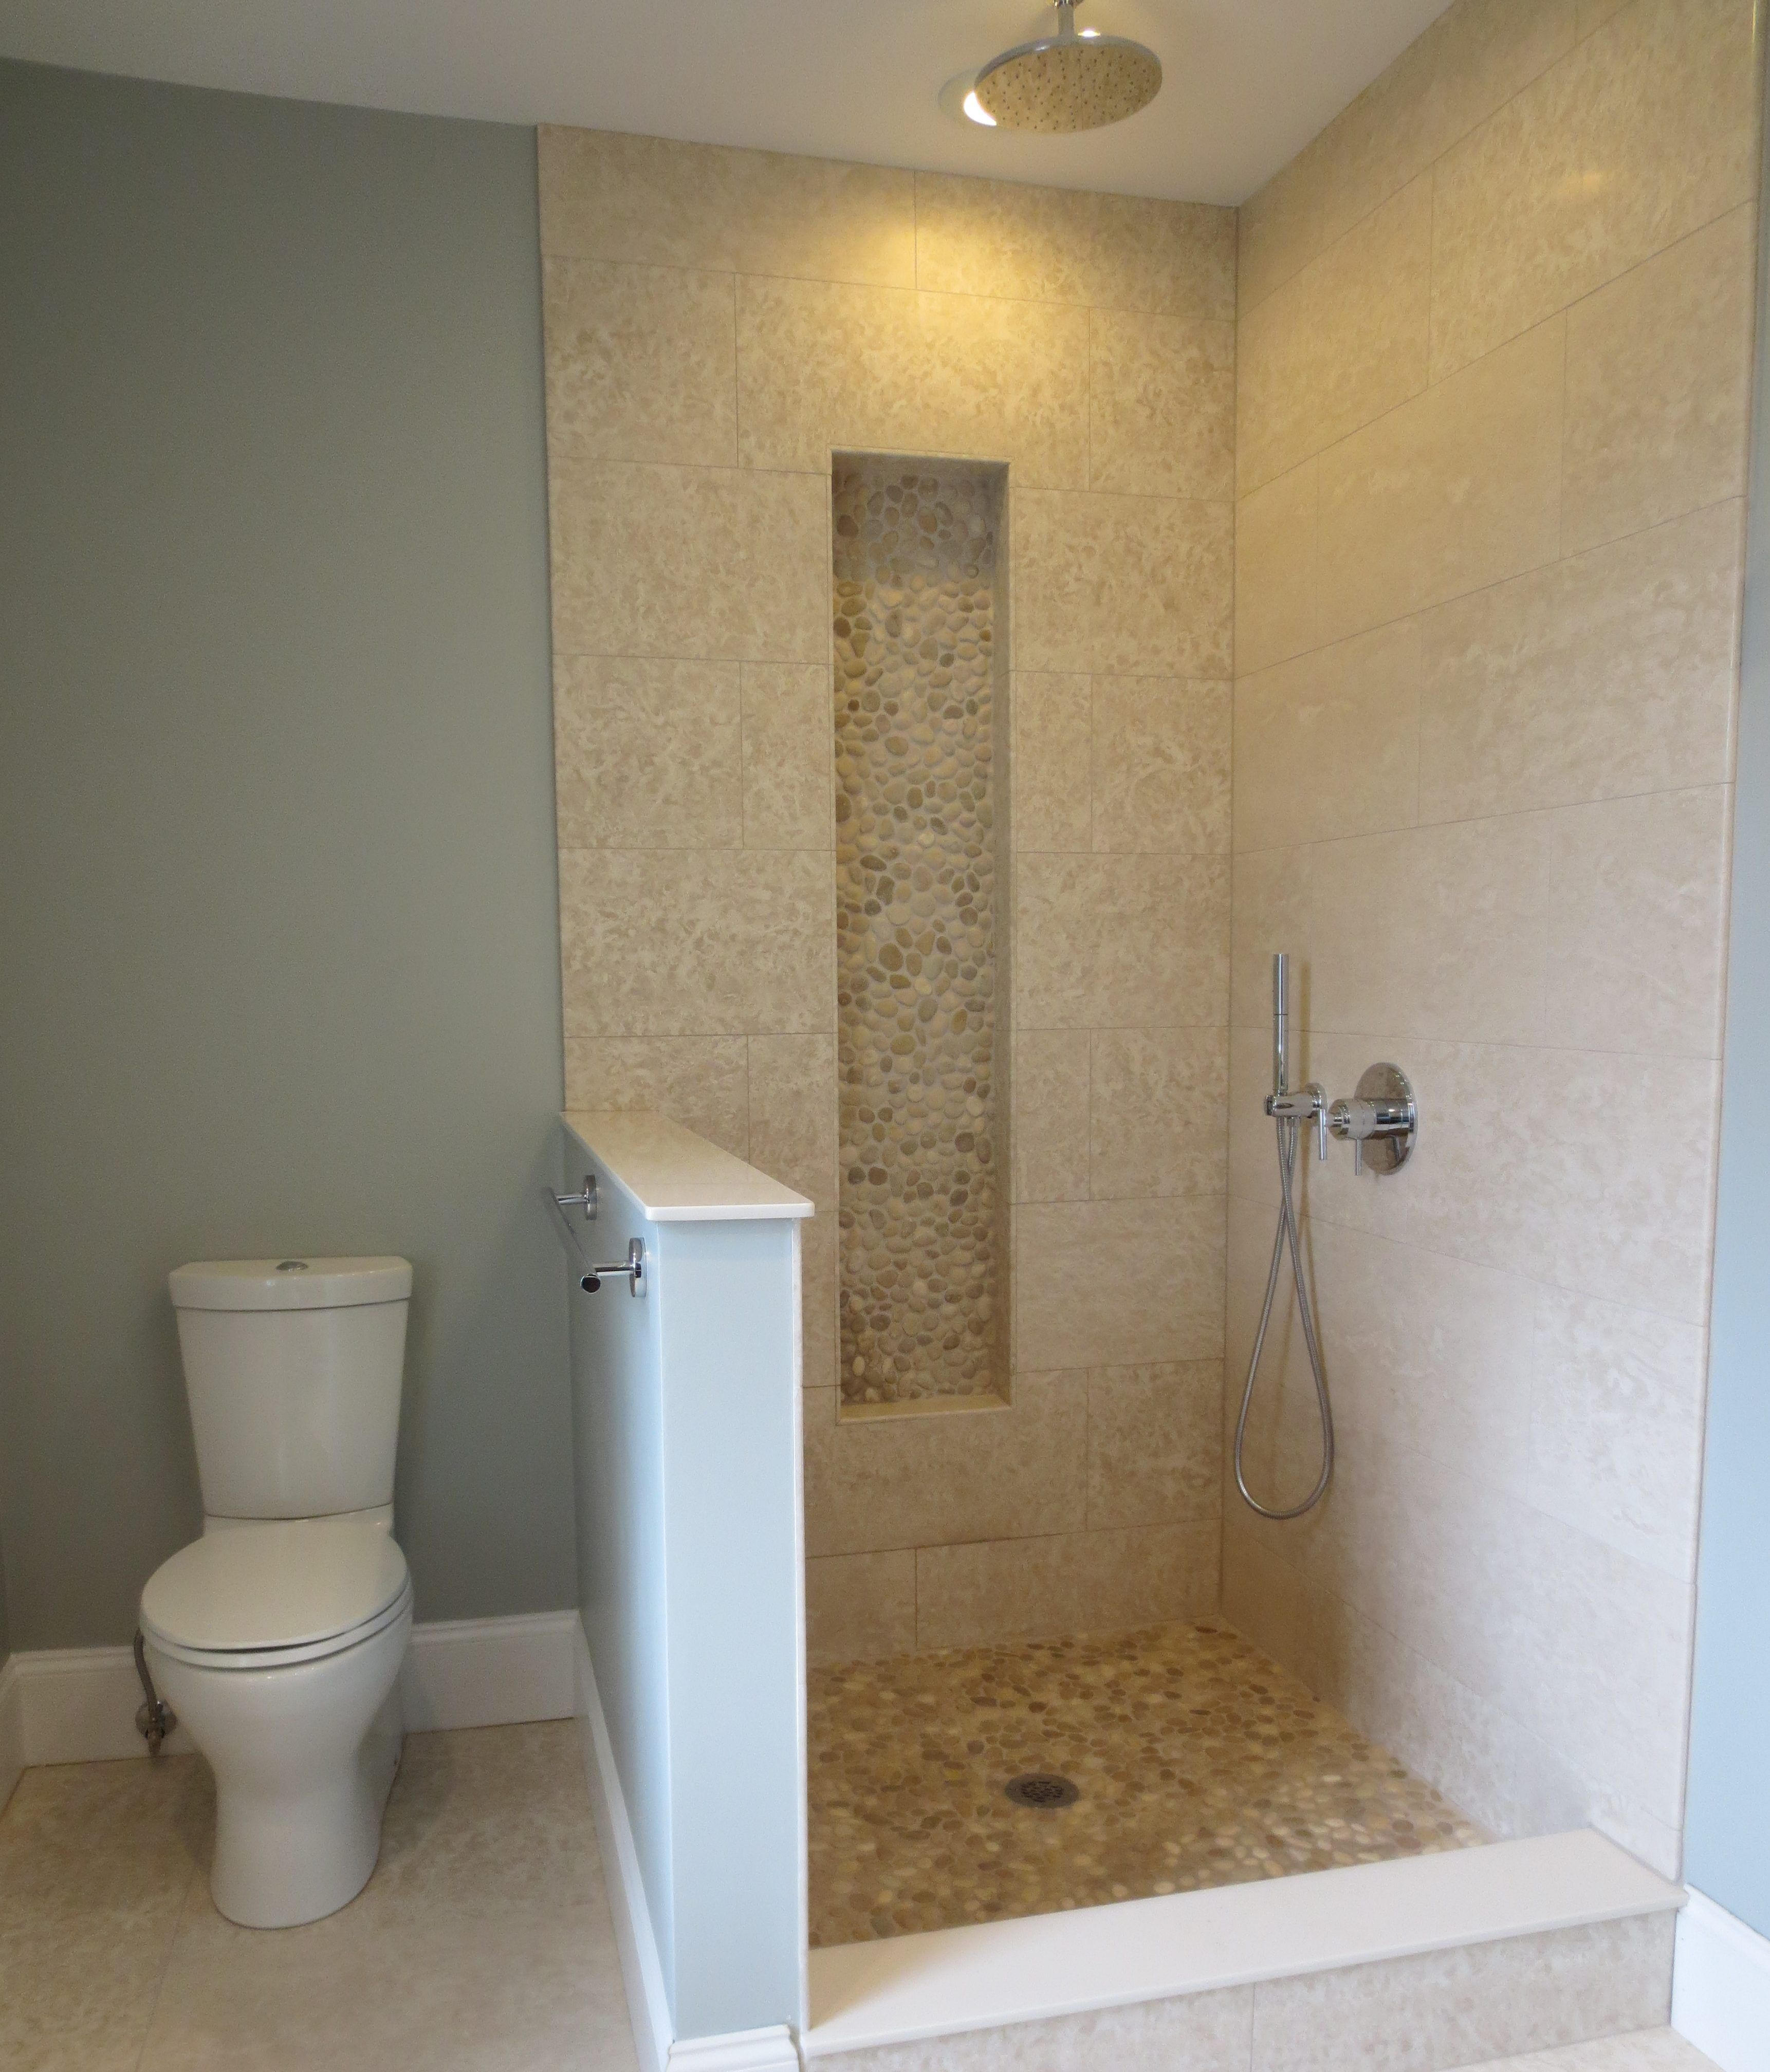 Bathroom Remodeling Canty Brothers Corporation Massachusetts - Property brothers bathroom remodel